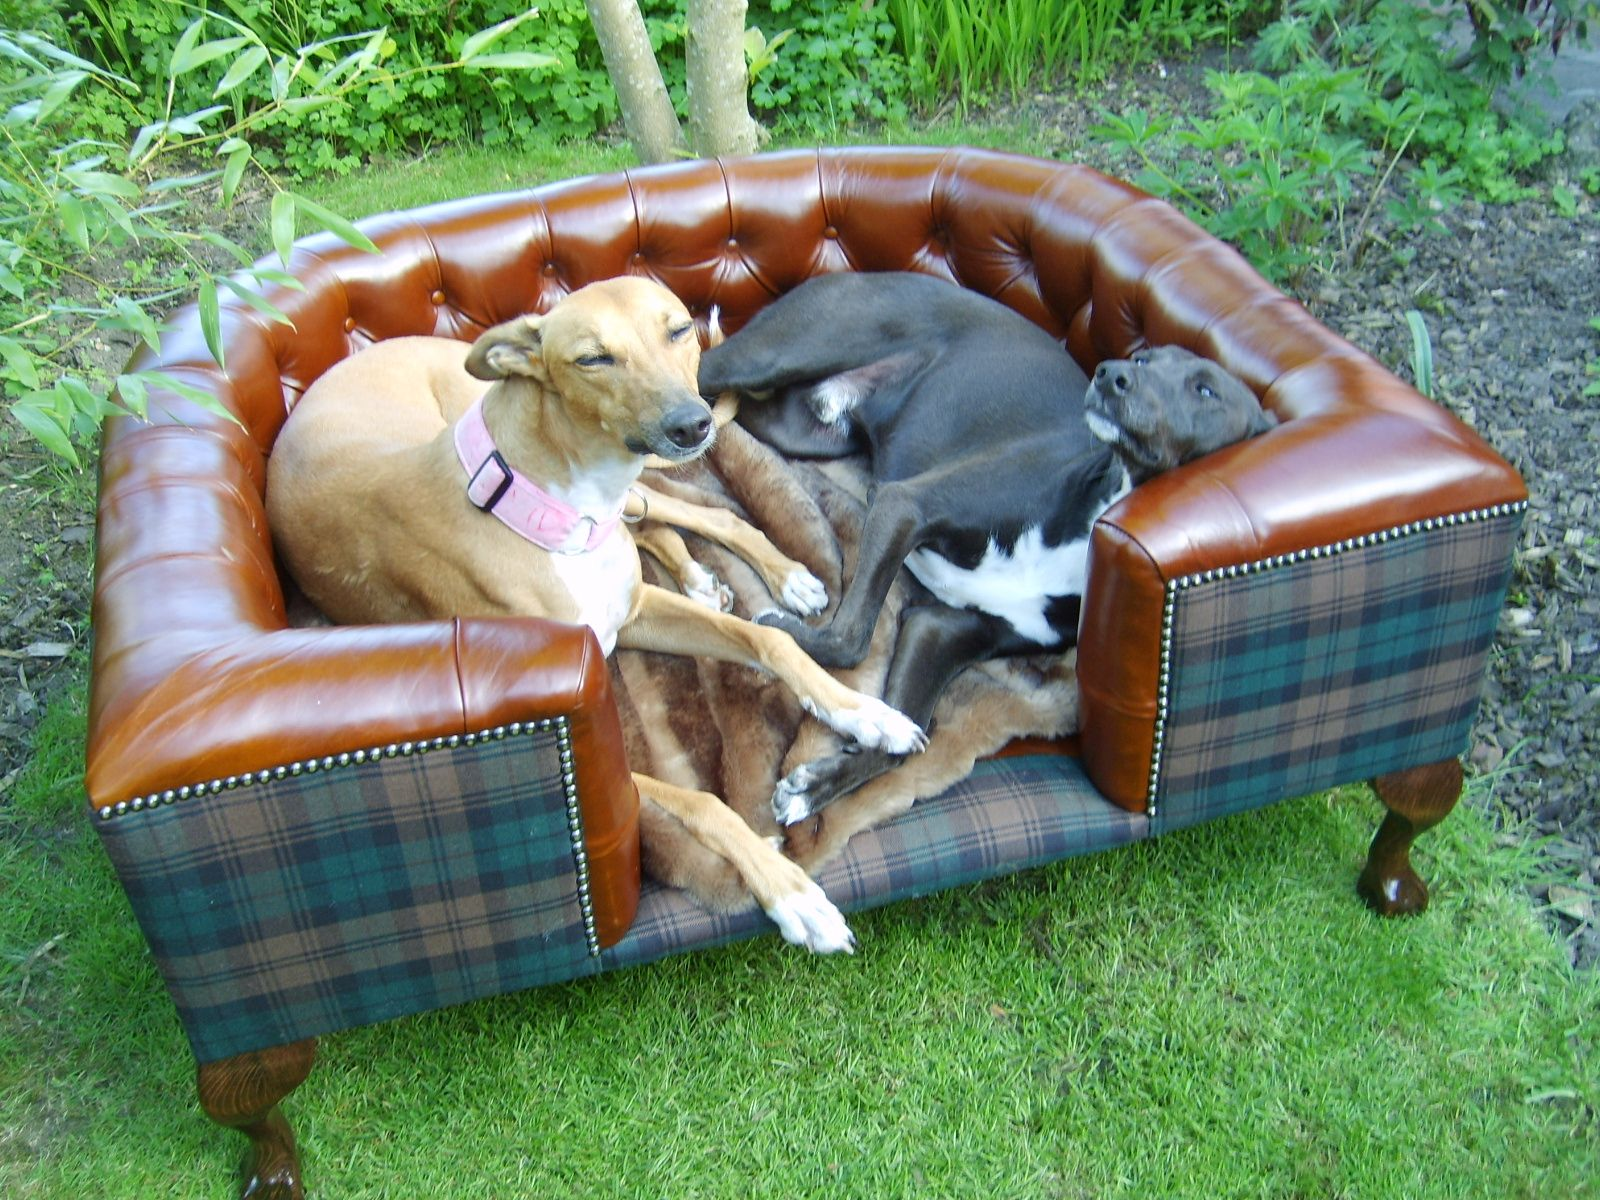 Bolsover And Tartan Luxury Leather Dog Bed Www Pinkwhiskers Co Uk Lurchers Not Included Pet Beds Leather Dog Bed Whippet Dog